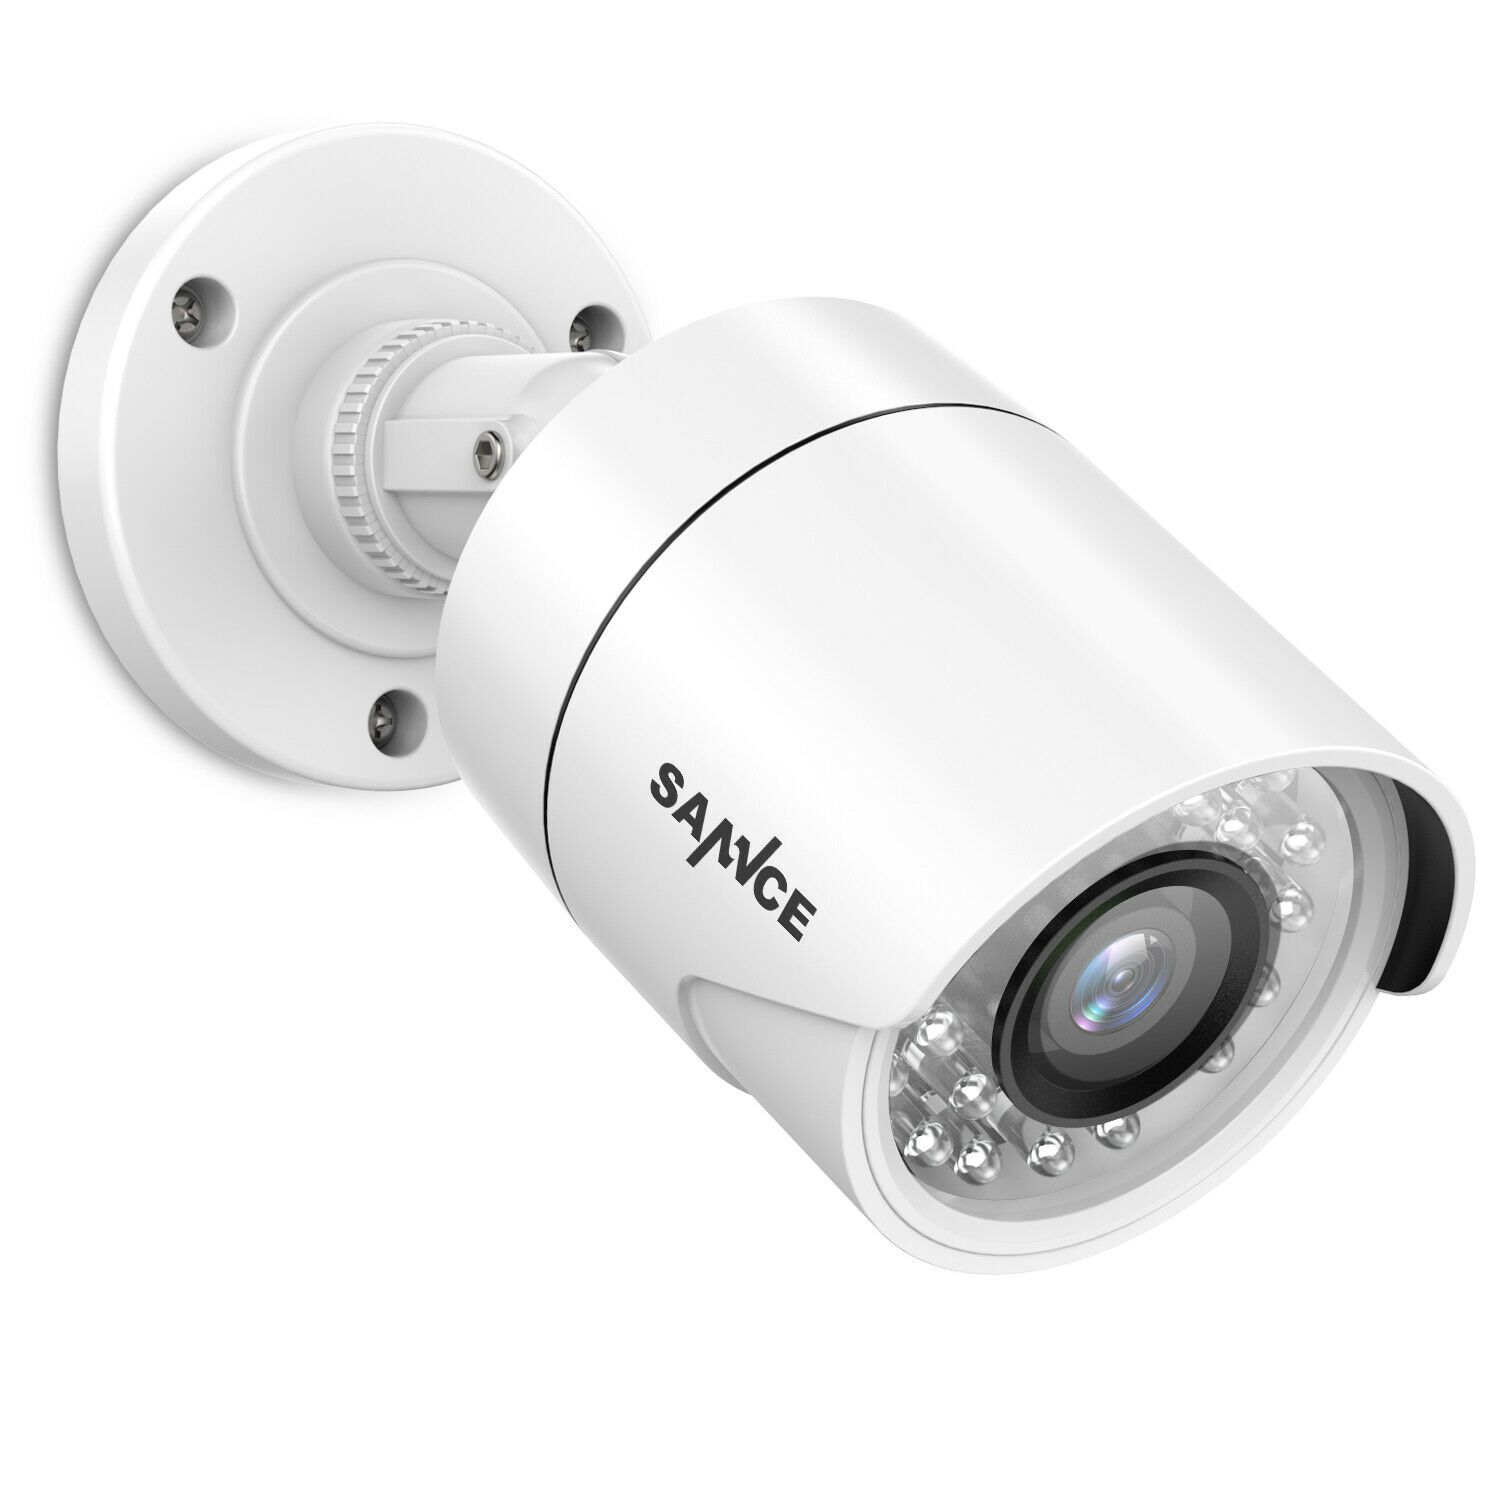 Sannce 720p Wired Weatherproof Hd Bullet Night Vision Cctv Video Security Cam Security Camera Ideas Wireless Home Security Systems Home Security Camera Systems